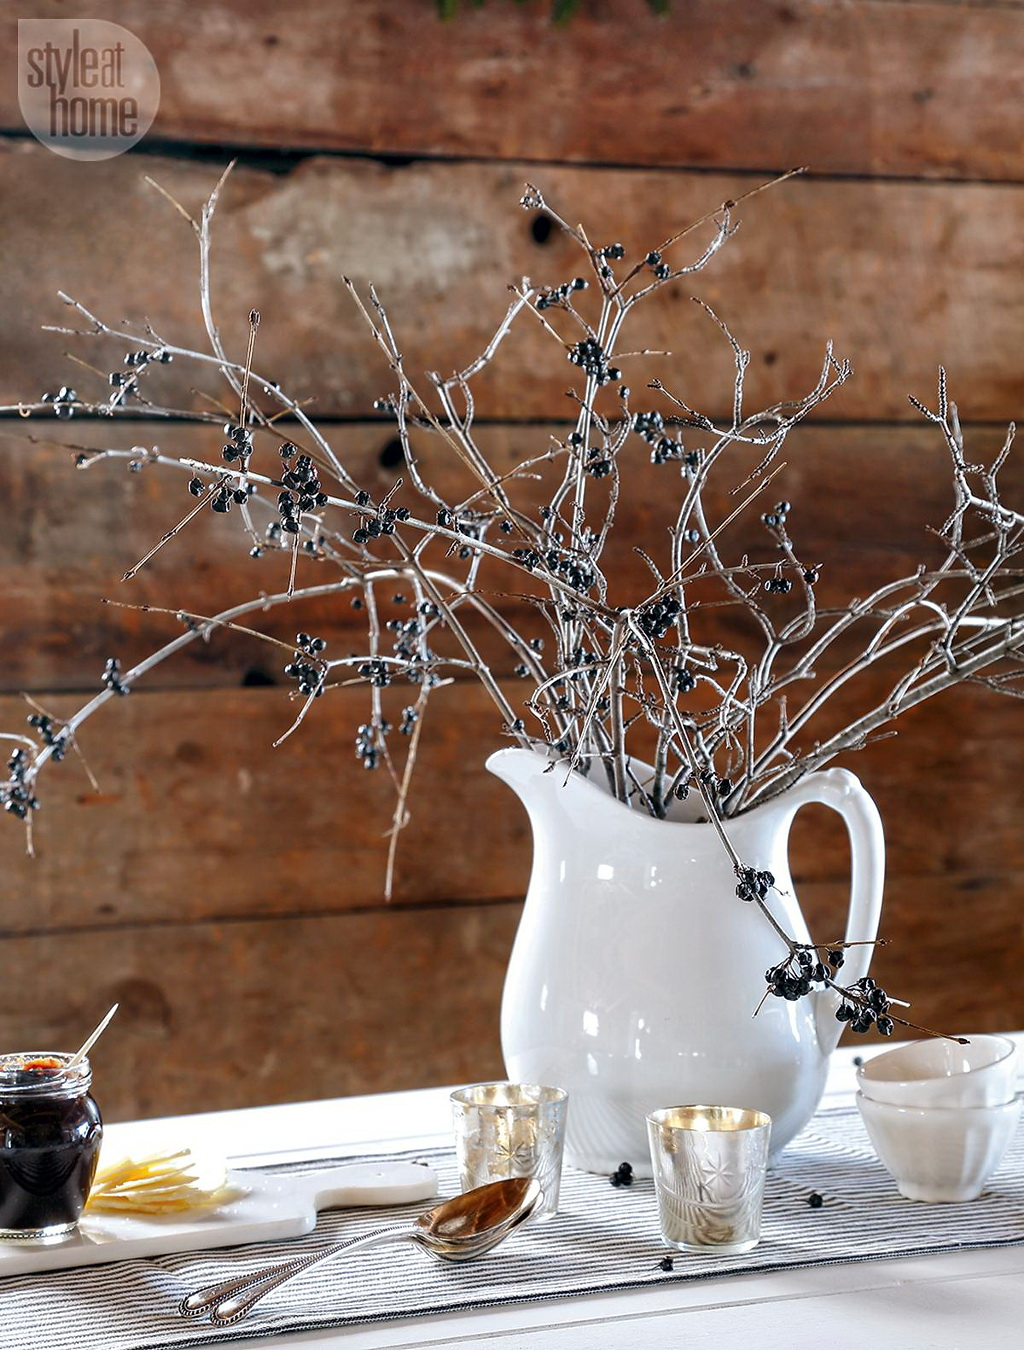 Style At Home Rustic Nordic holiday style 8